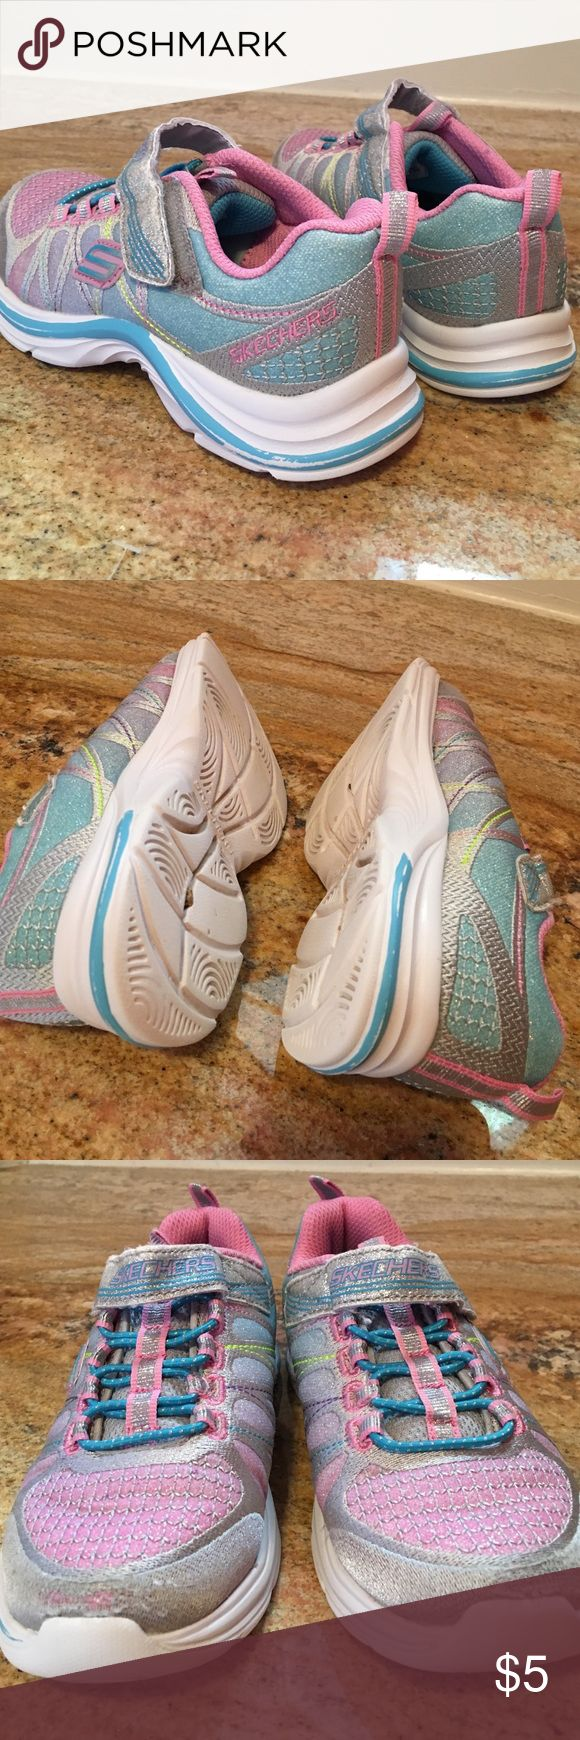 👟Skechers Girls shoes soft tones. Loved Skechers girls shoes in a 12.5 Medium. These are Velcro closure and have some wear on the toes as noted in pic. These will go FREE into any girls purchase with clothes or shoes of two or more items. I will reduce the $5.00 on your bundle. Happy Poshing loves 👩👧 Skechers Shoes Sneakers